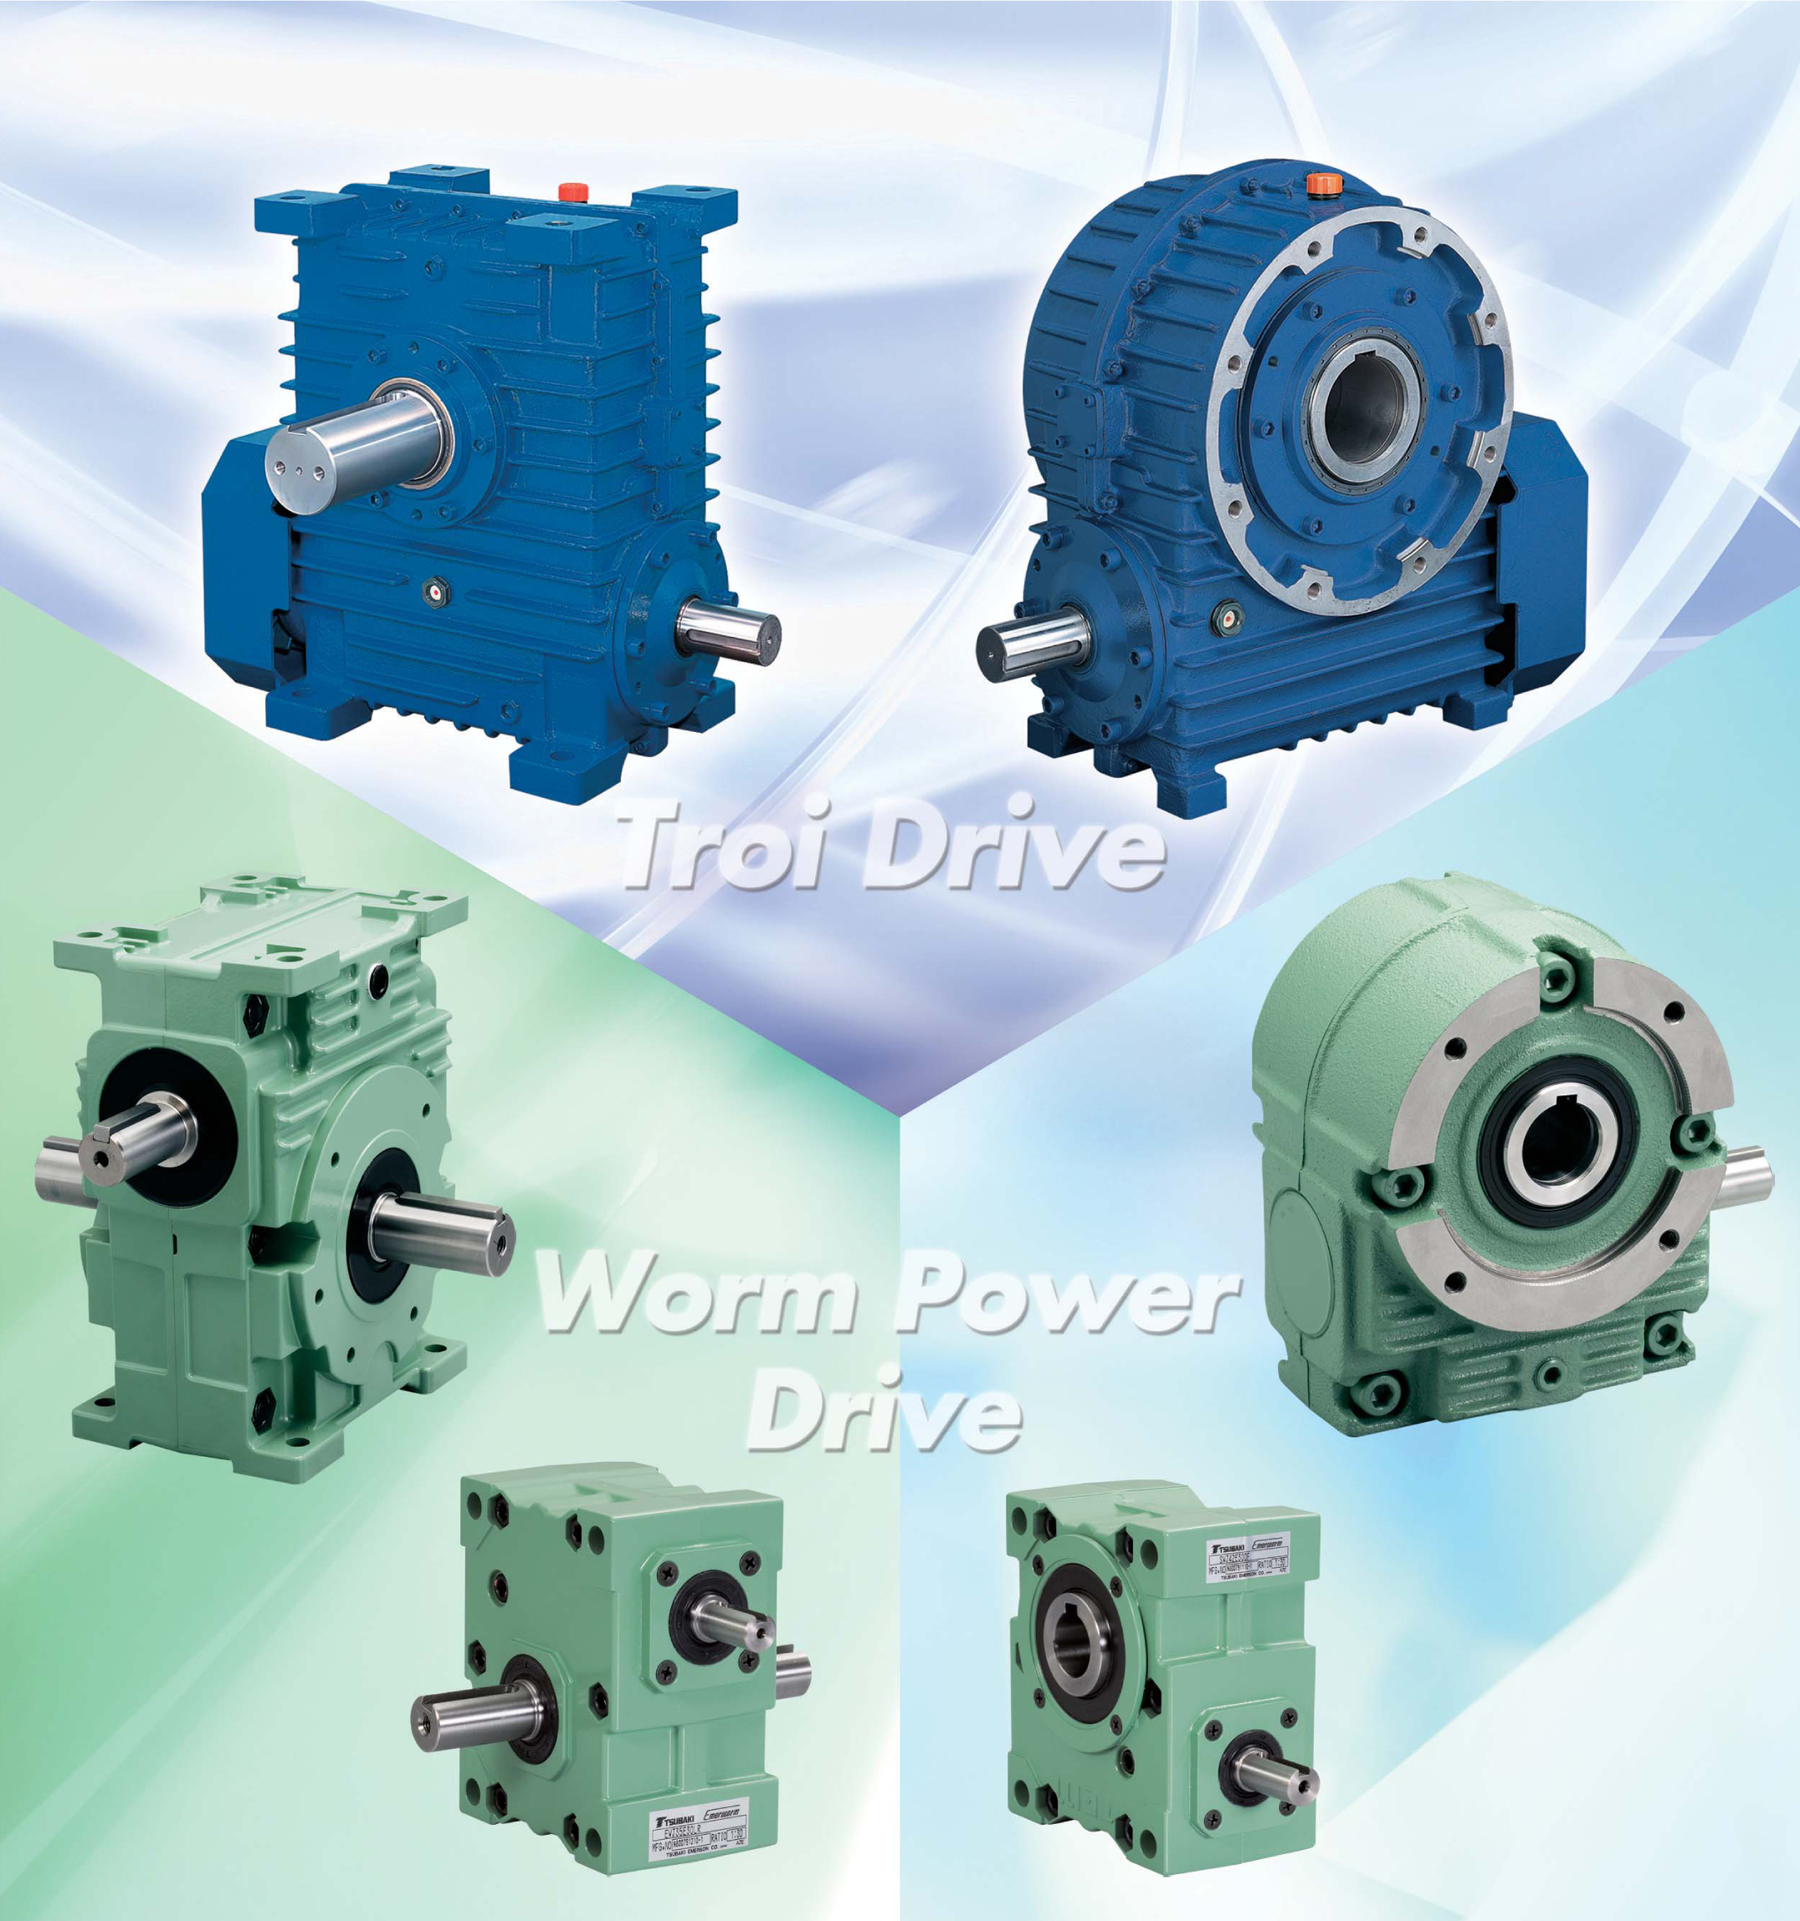 Compact worm gear drives deliver improved performance